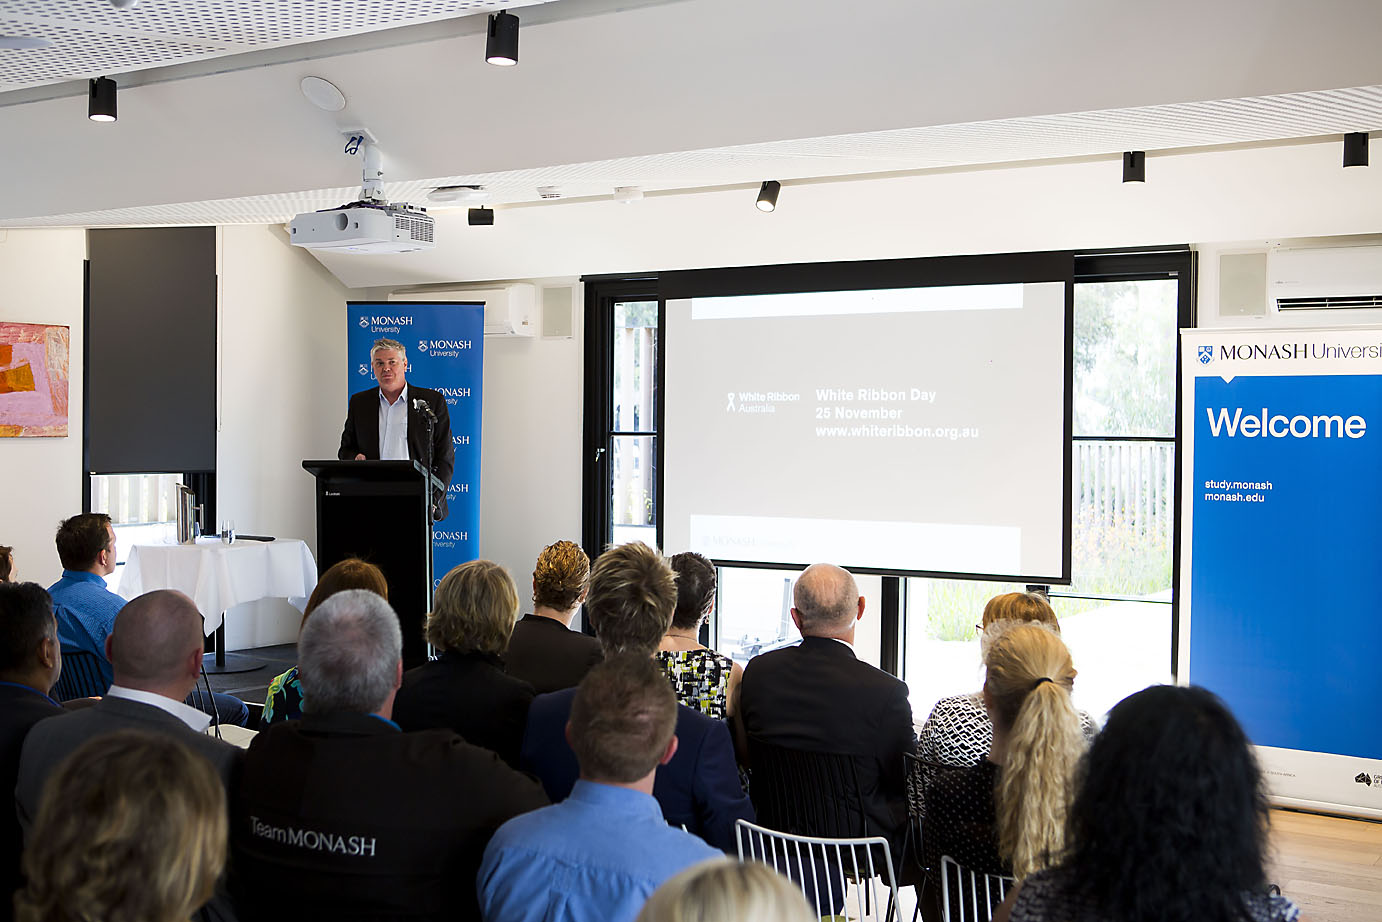 Mr Andrew Picouleau speaking about initiatives being taken at Monash to support the White Ribbon Movement